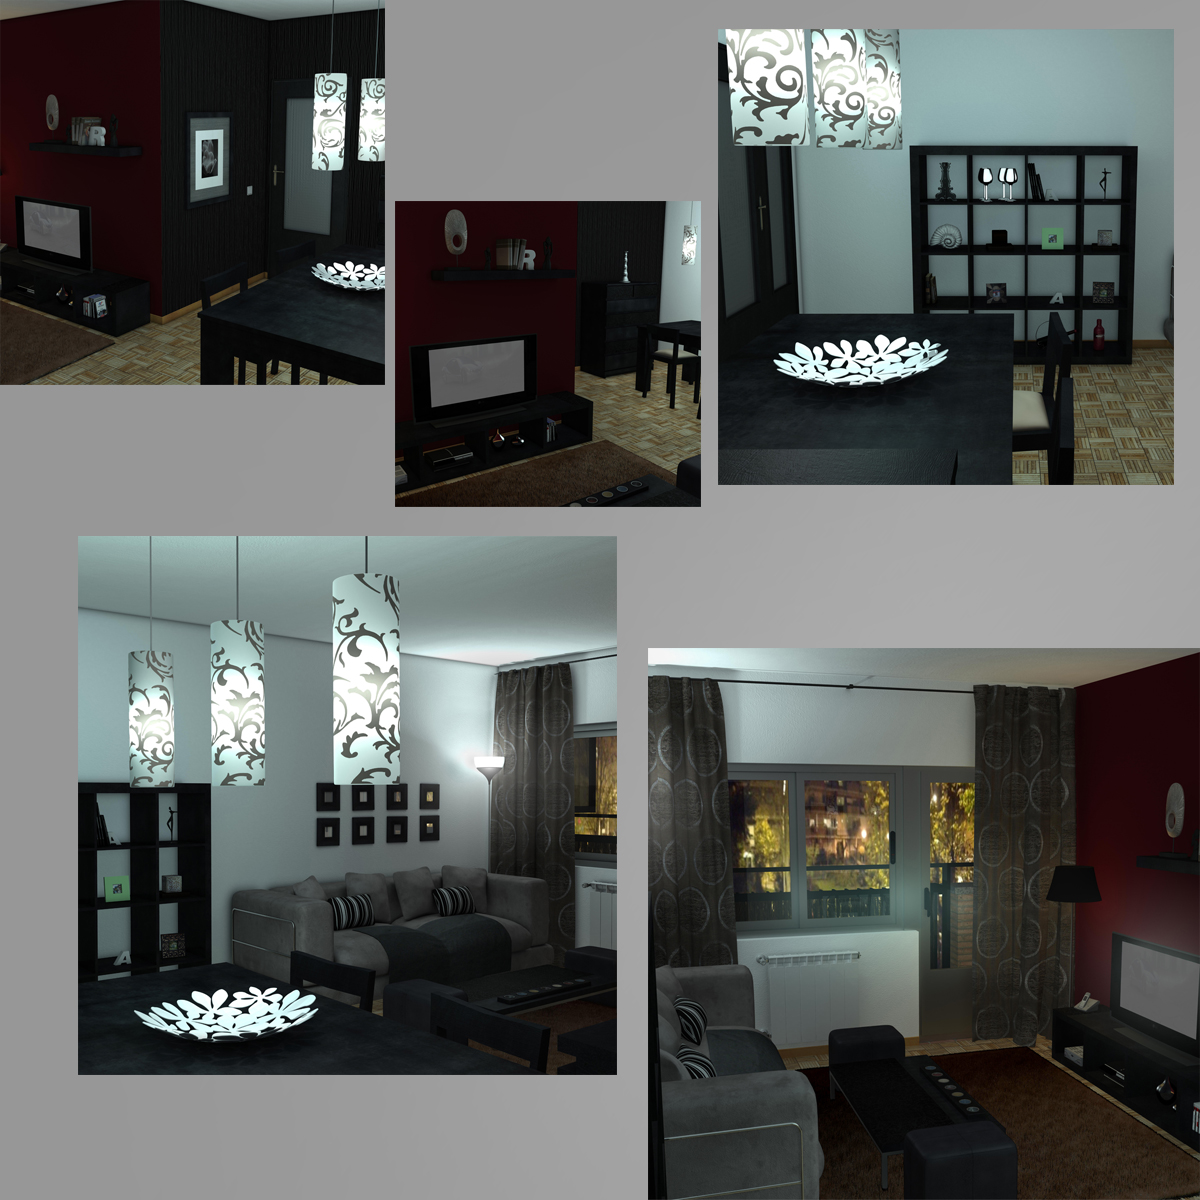 living room 3d model 3ds max fbx c4d ma mb obj 159616